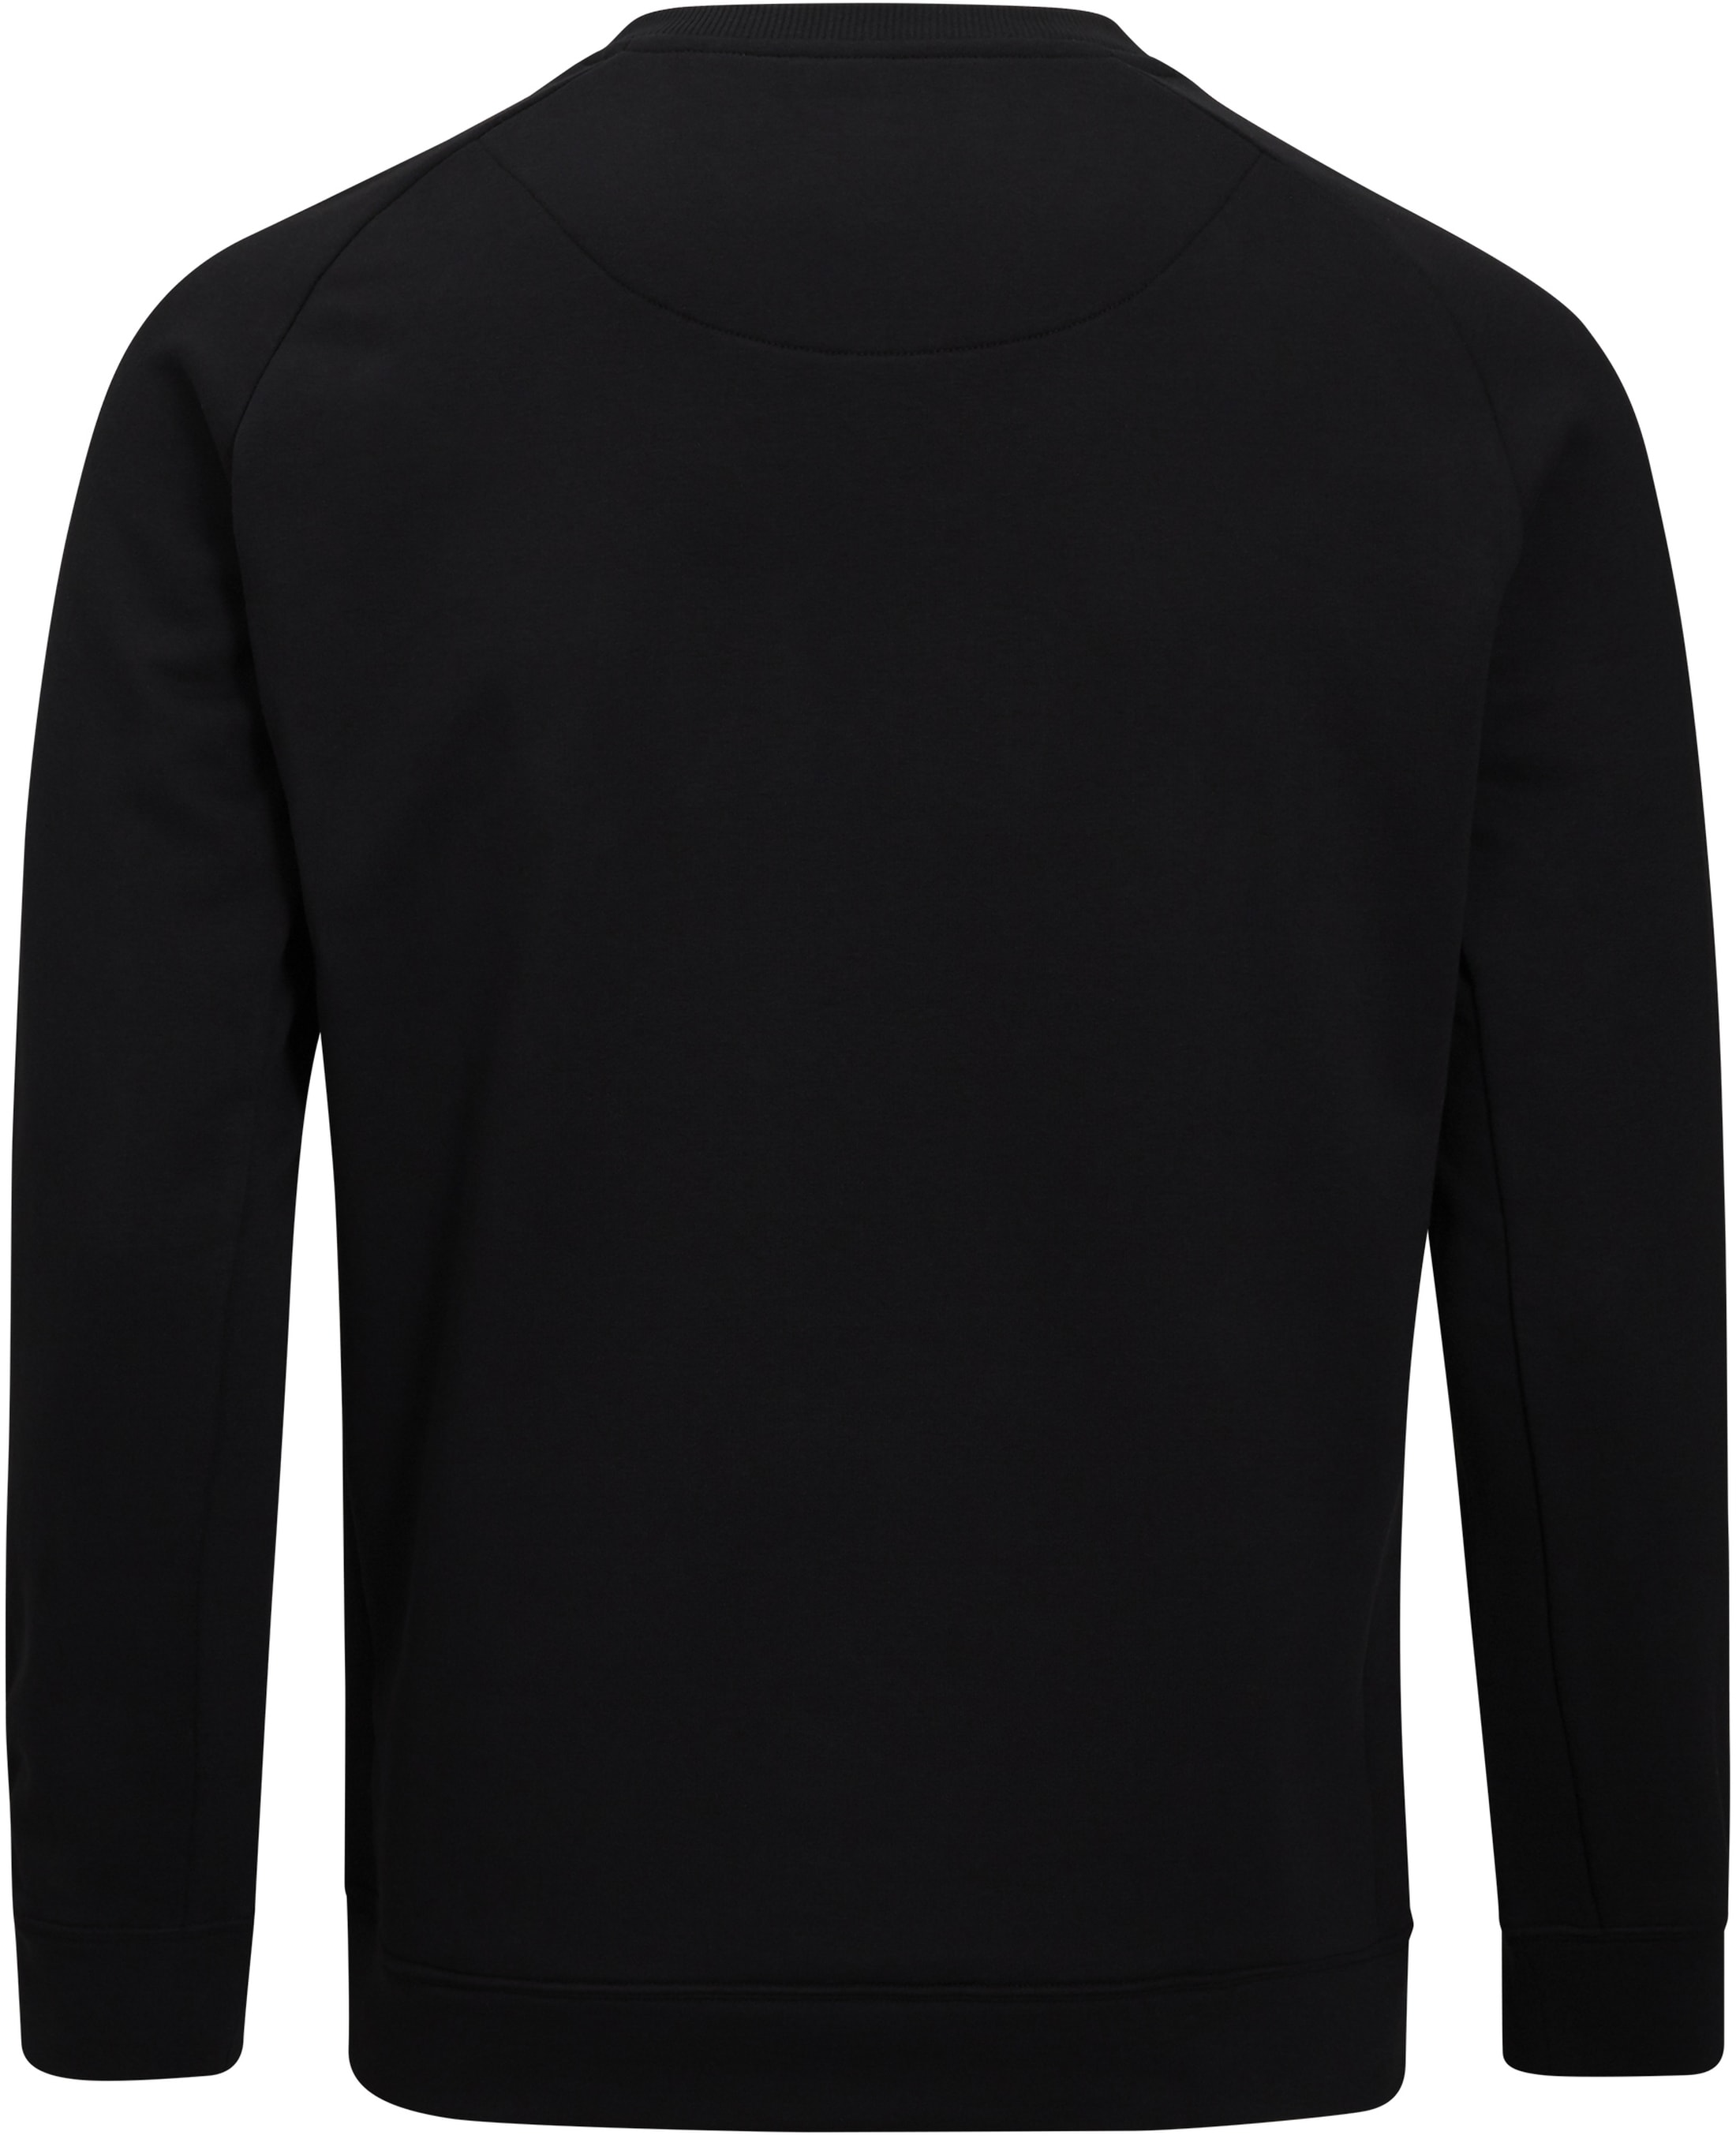 Bjorn Borg Sweater Crew Black Beauty foto 2